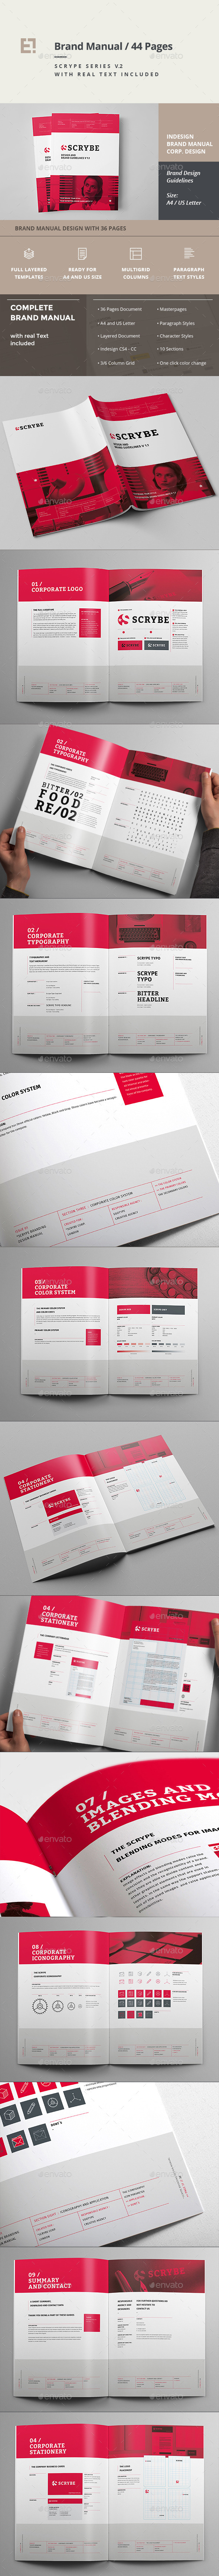 GraphicRiver Brand Manual 11954373